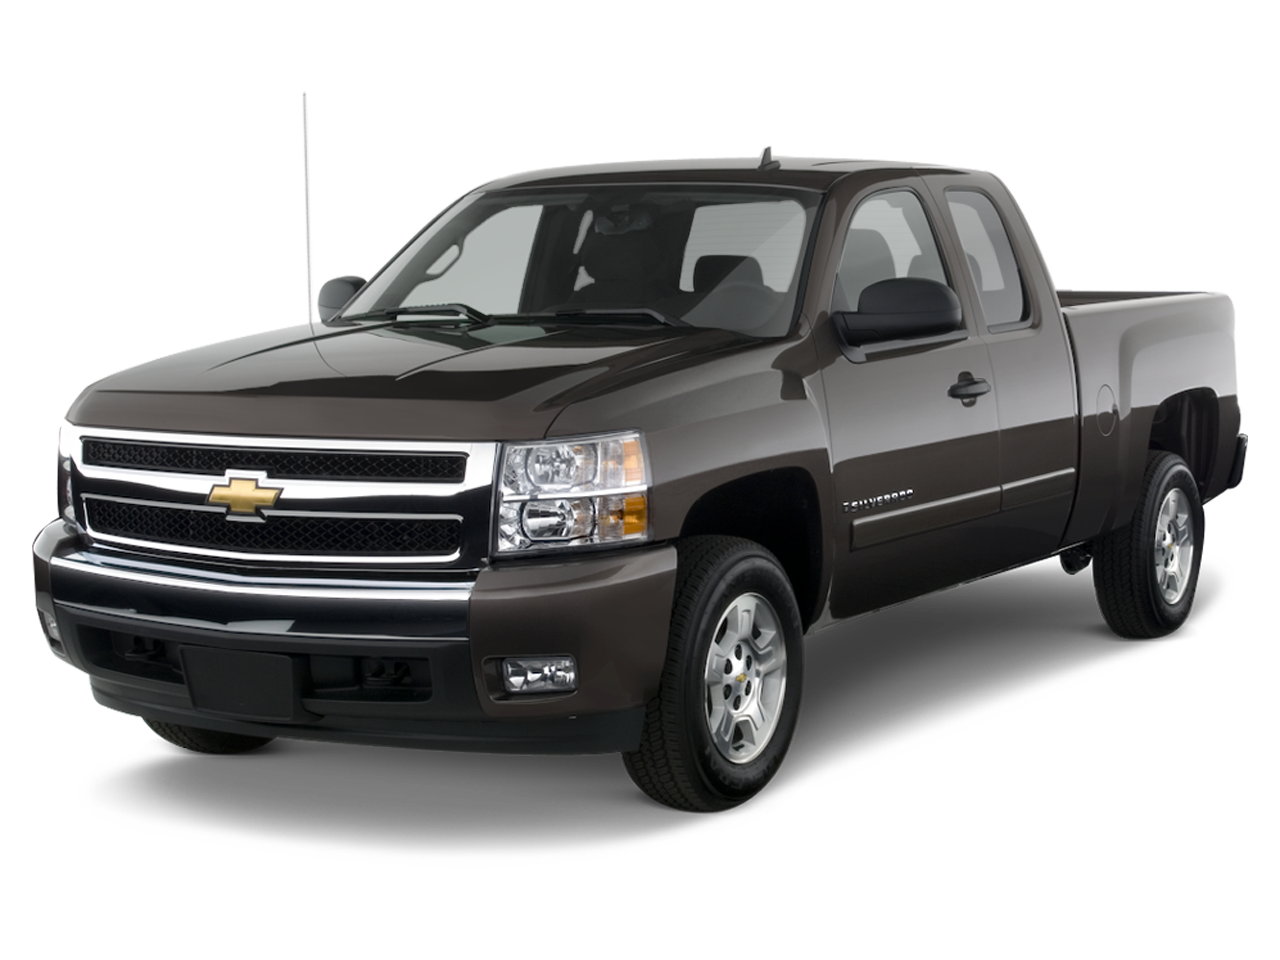 2011 chevrolet silverado 1500 lt extended cab mwb specs and features msn autos. Black Bedroom Furniture Sets. Home Design Ideas